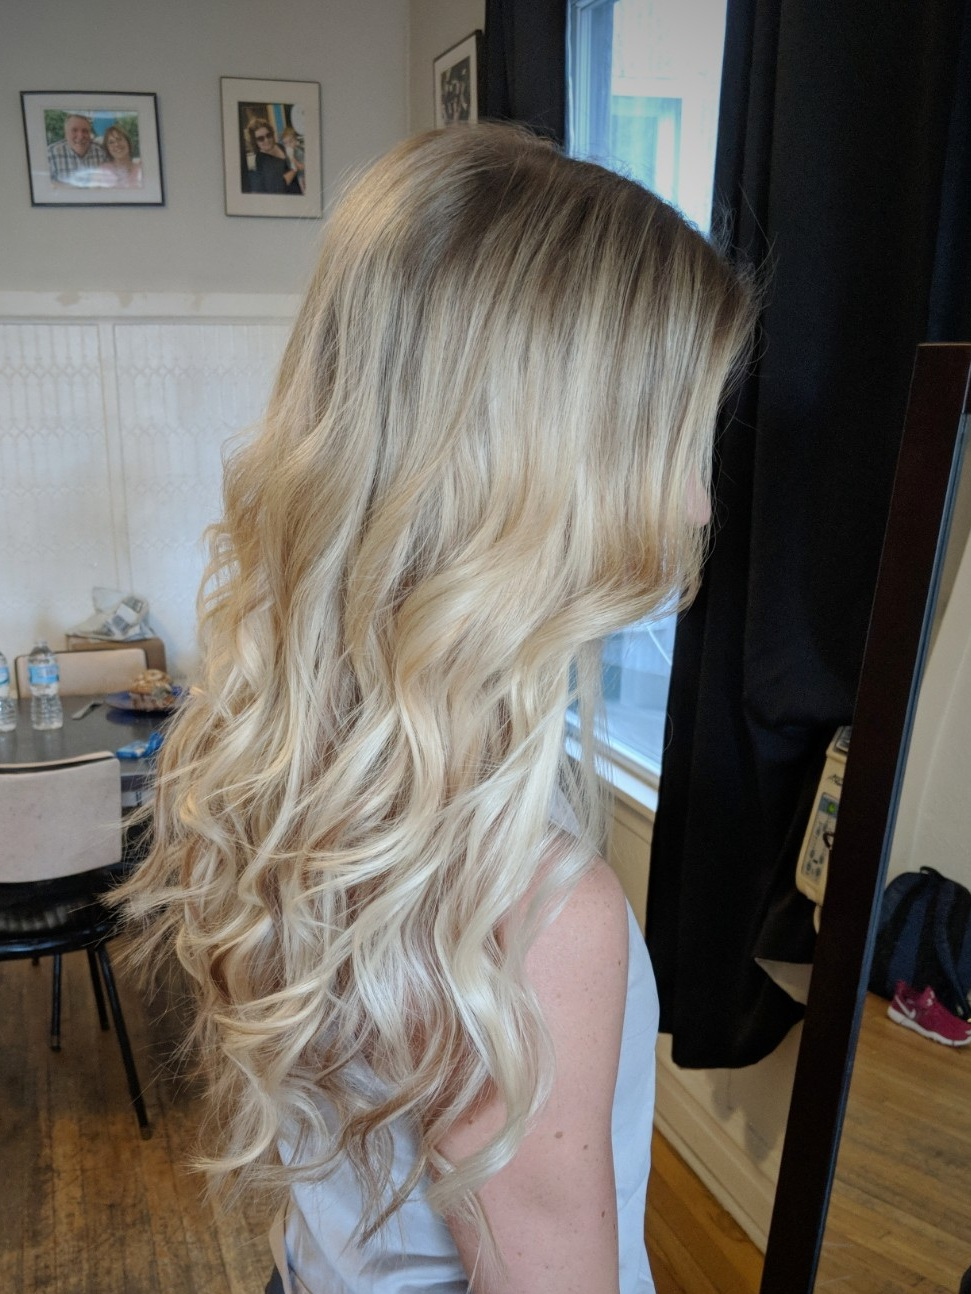 Fusion extensions on fine, shoulder length hair.